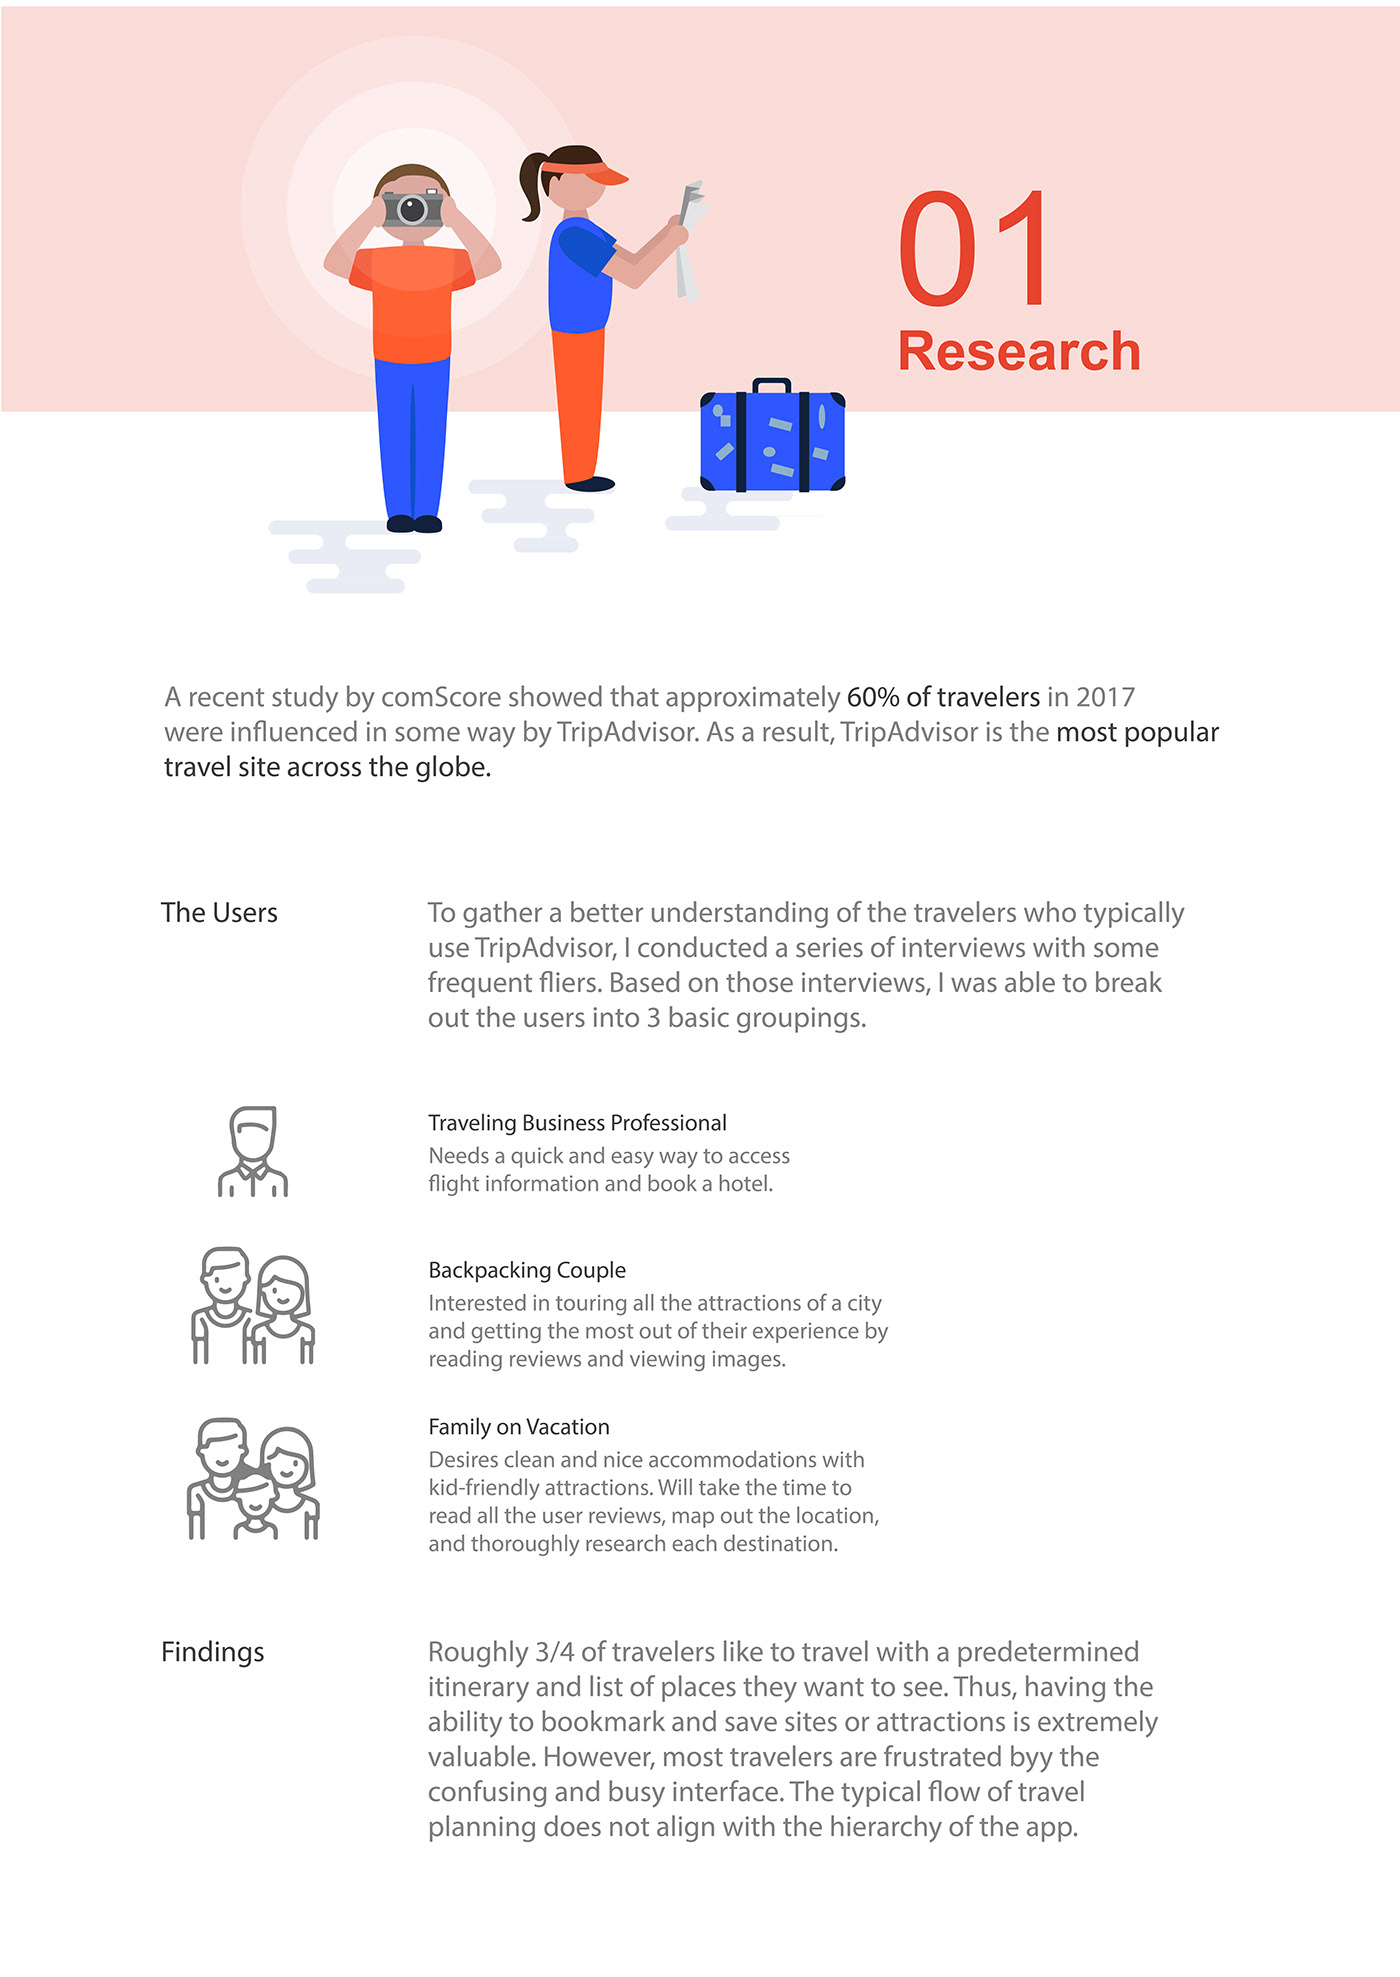 ux app design interactions user flows UX Research adobeawards